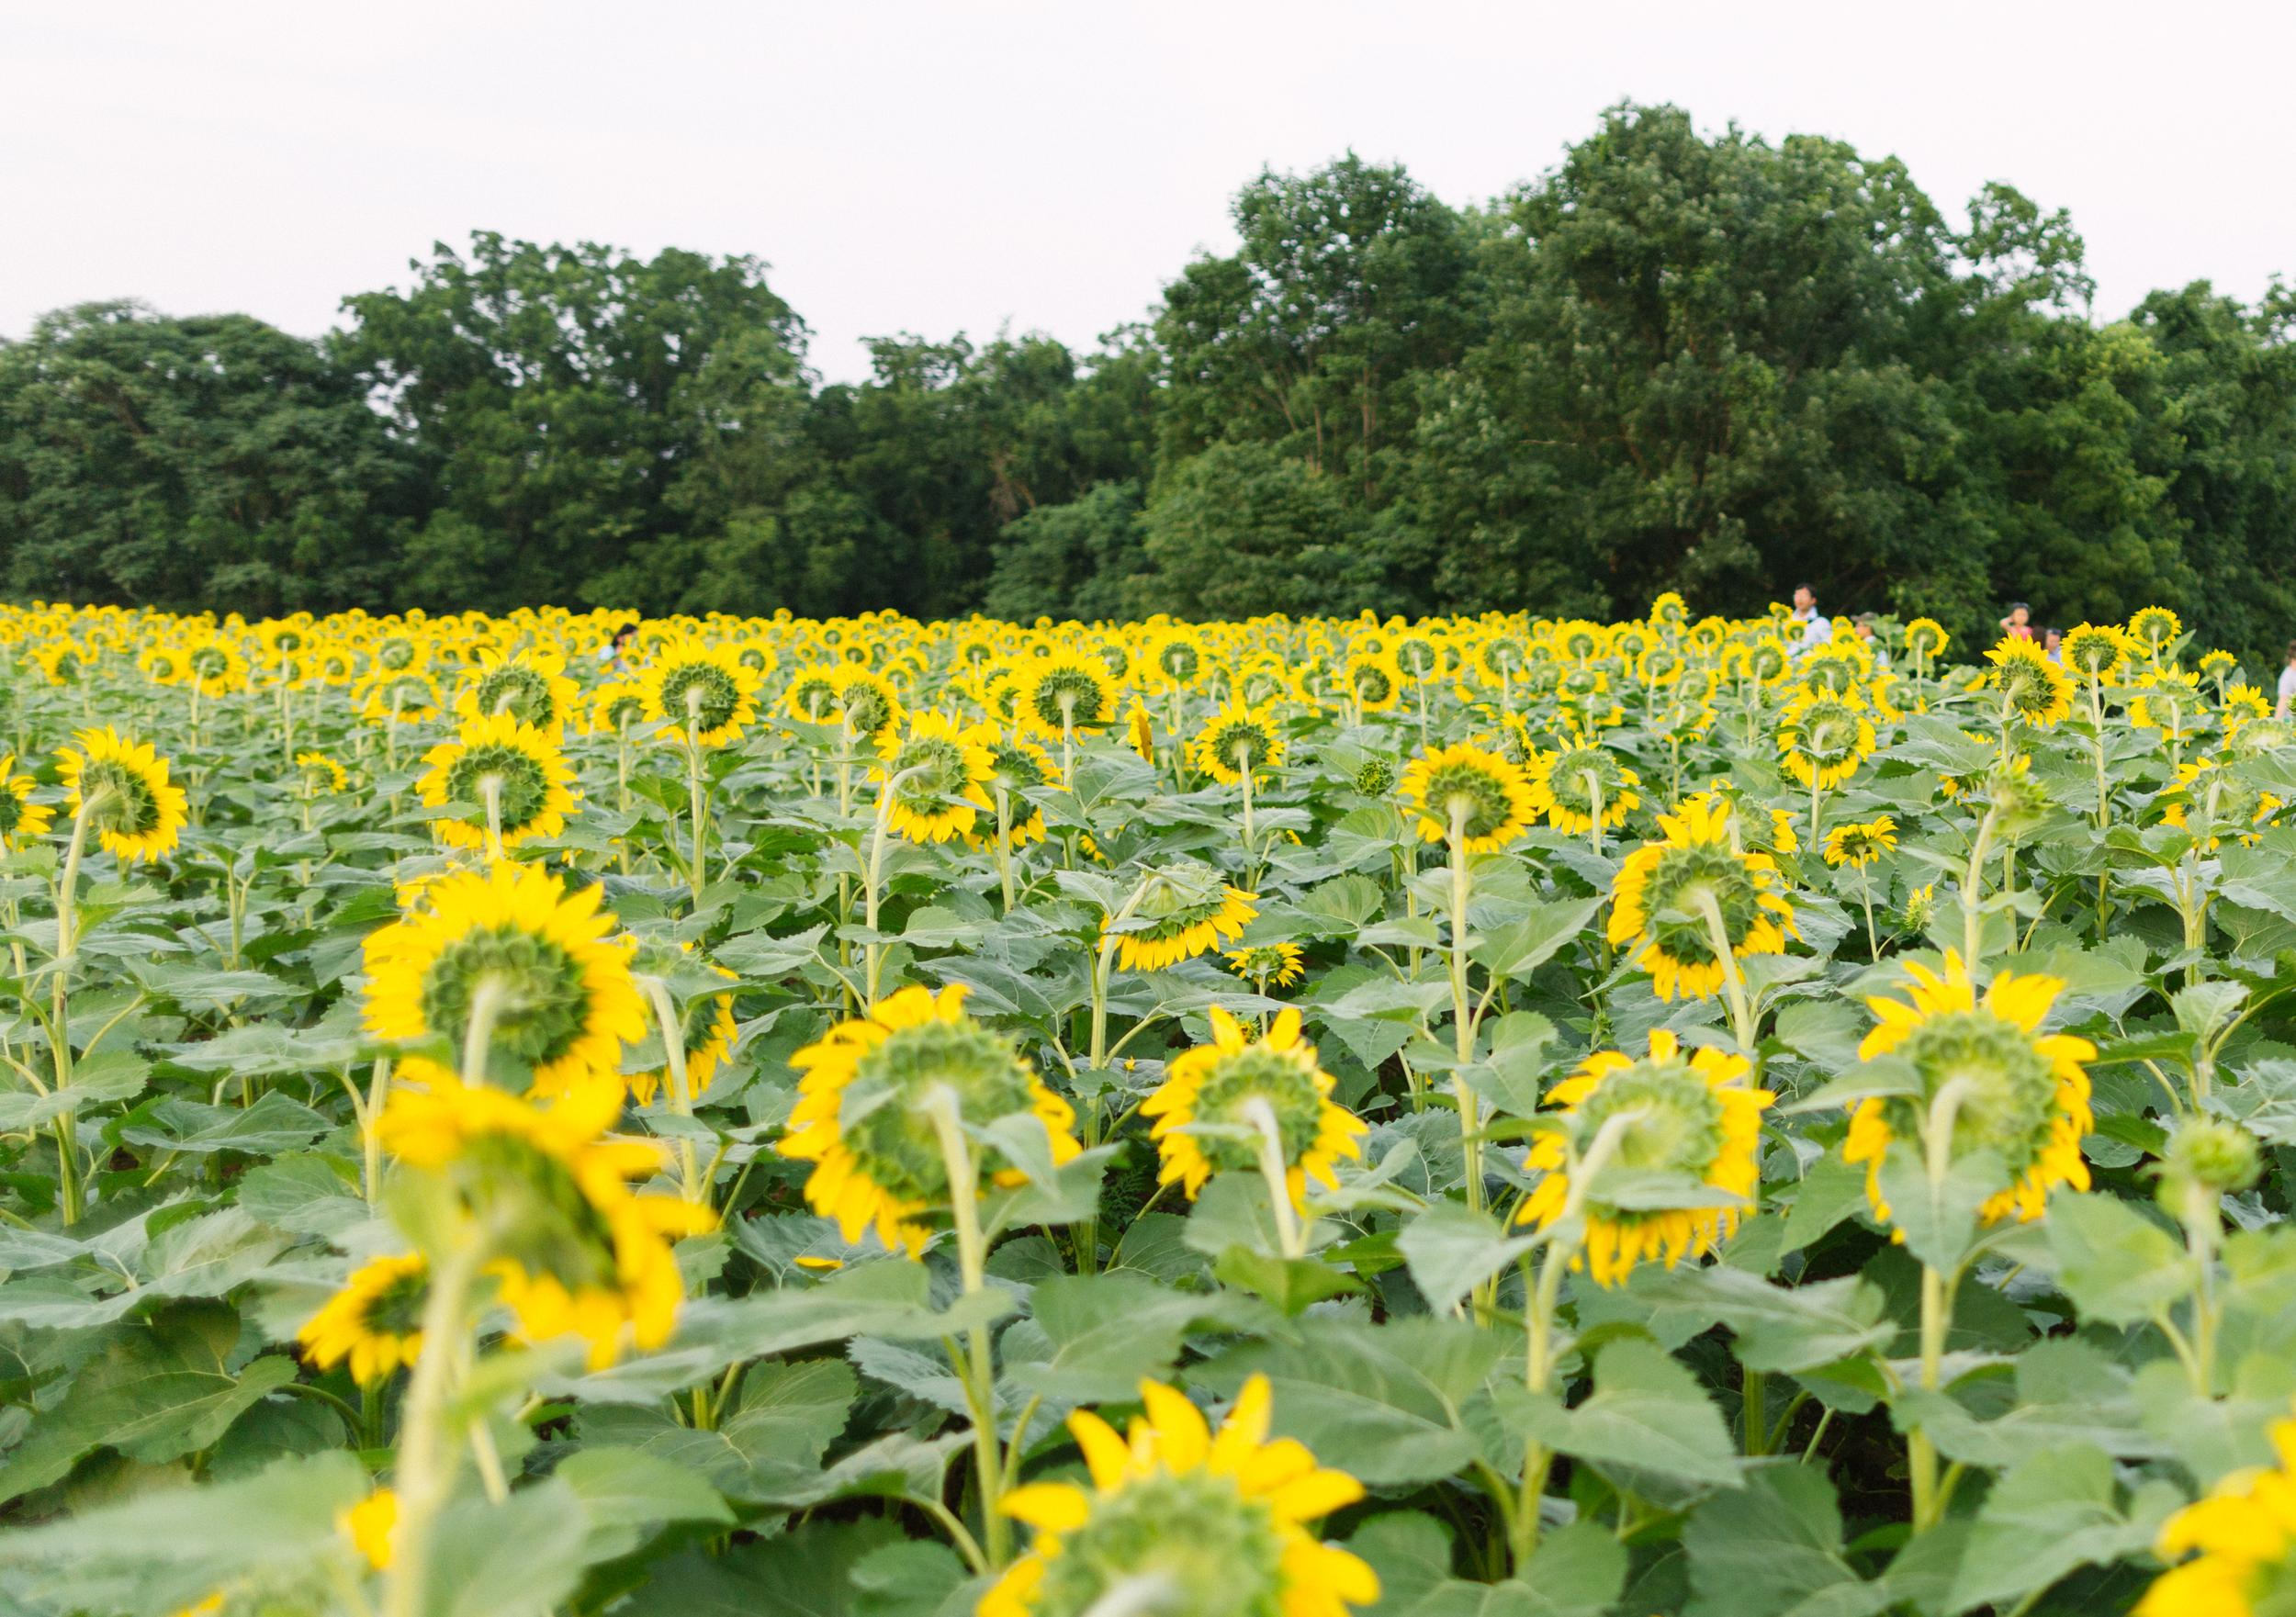 Sunflower Fields at McKee-Beshers in Maryland [Photo Guide]